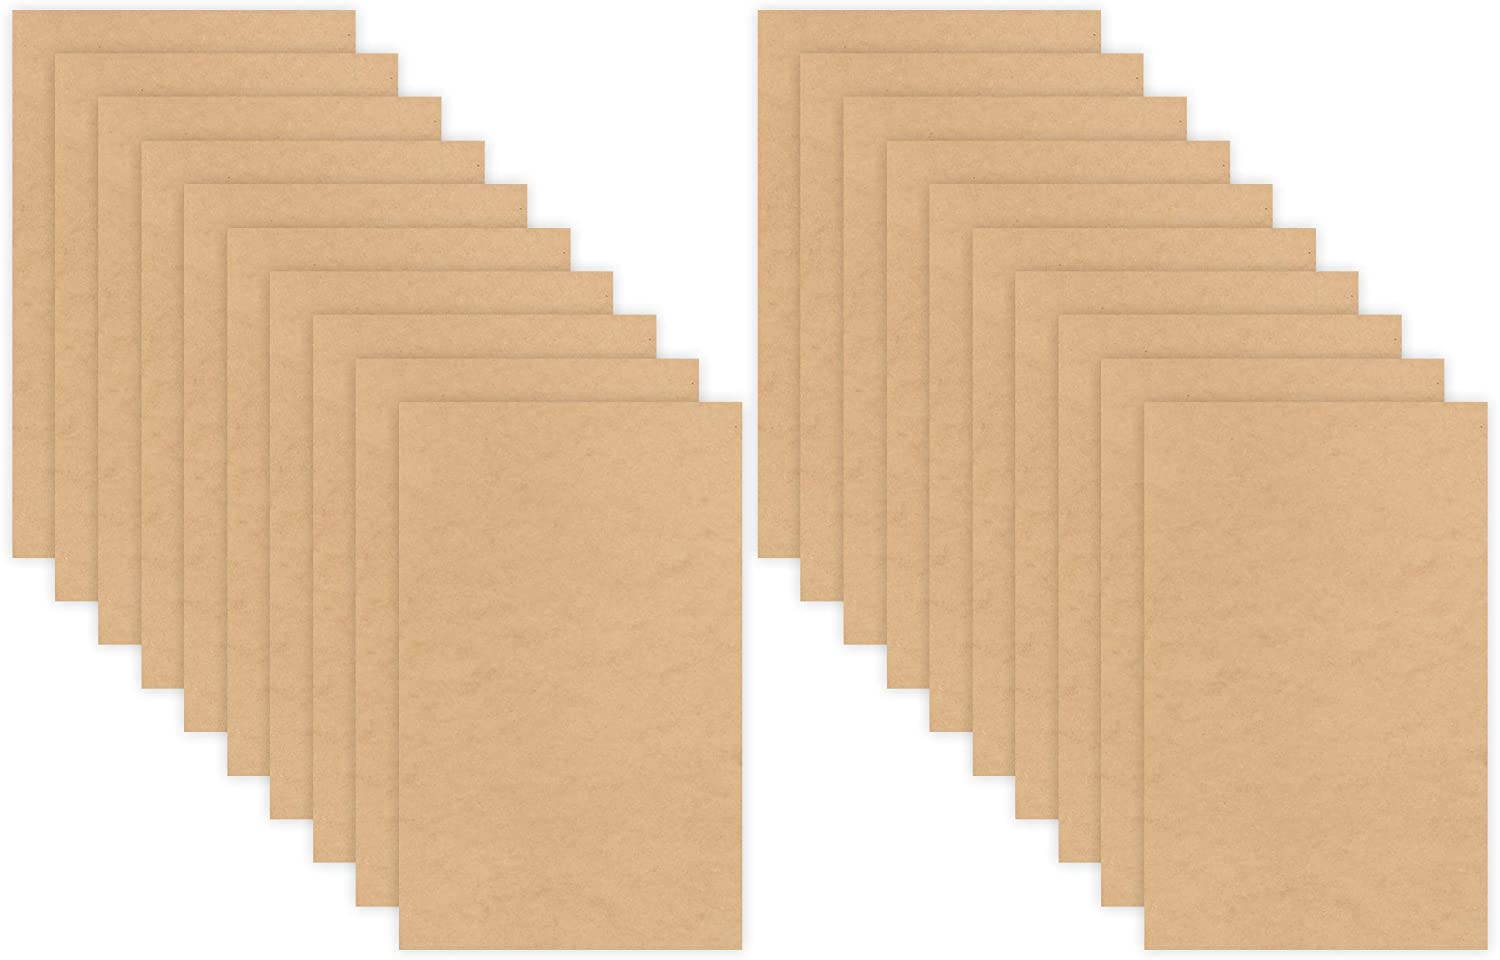 """6mm 1 4thinch MDF Medium Fibreboard 12""""x Density Sale Manufacturer direct delivery special price 19Ã"""